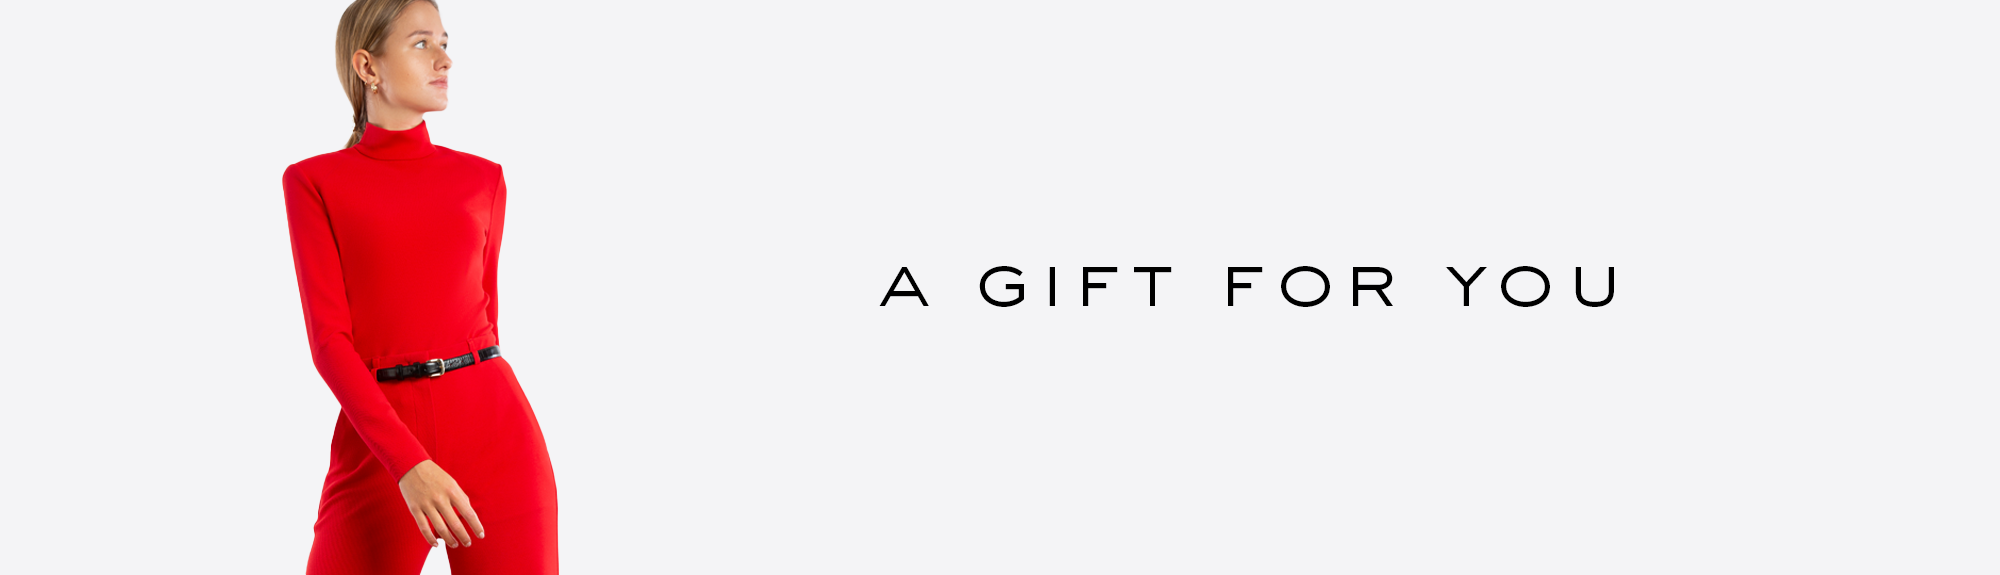 a membergift for you